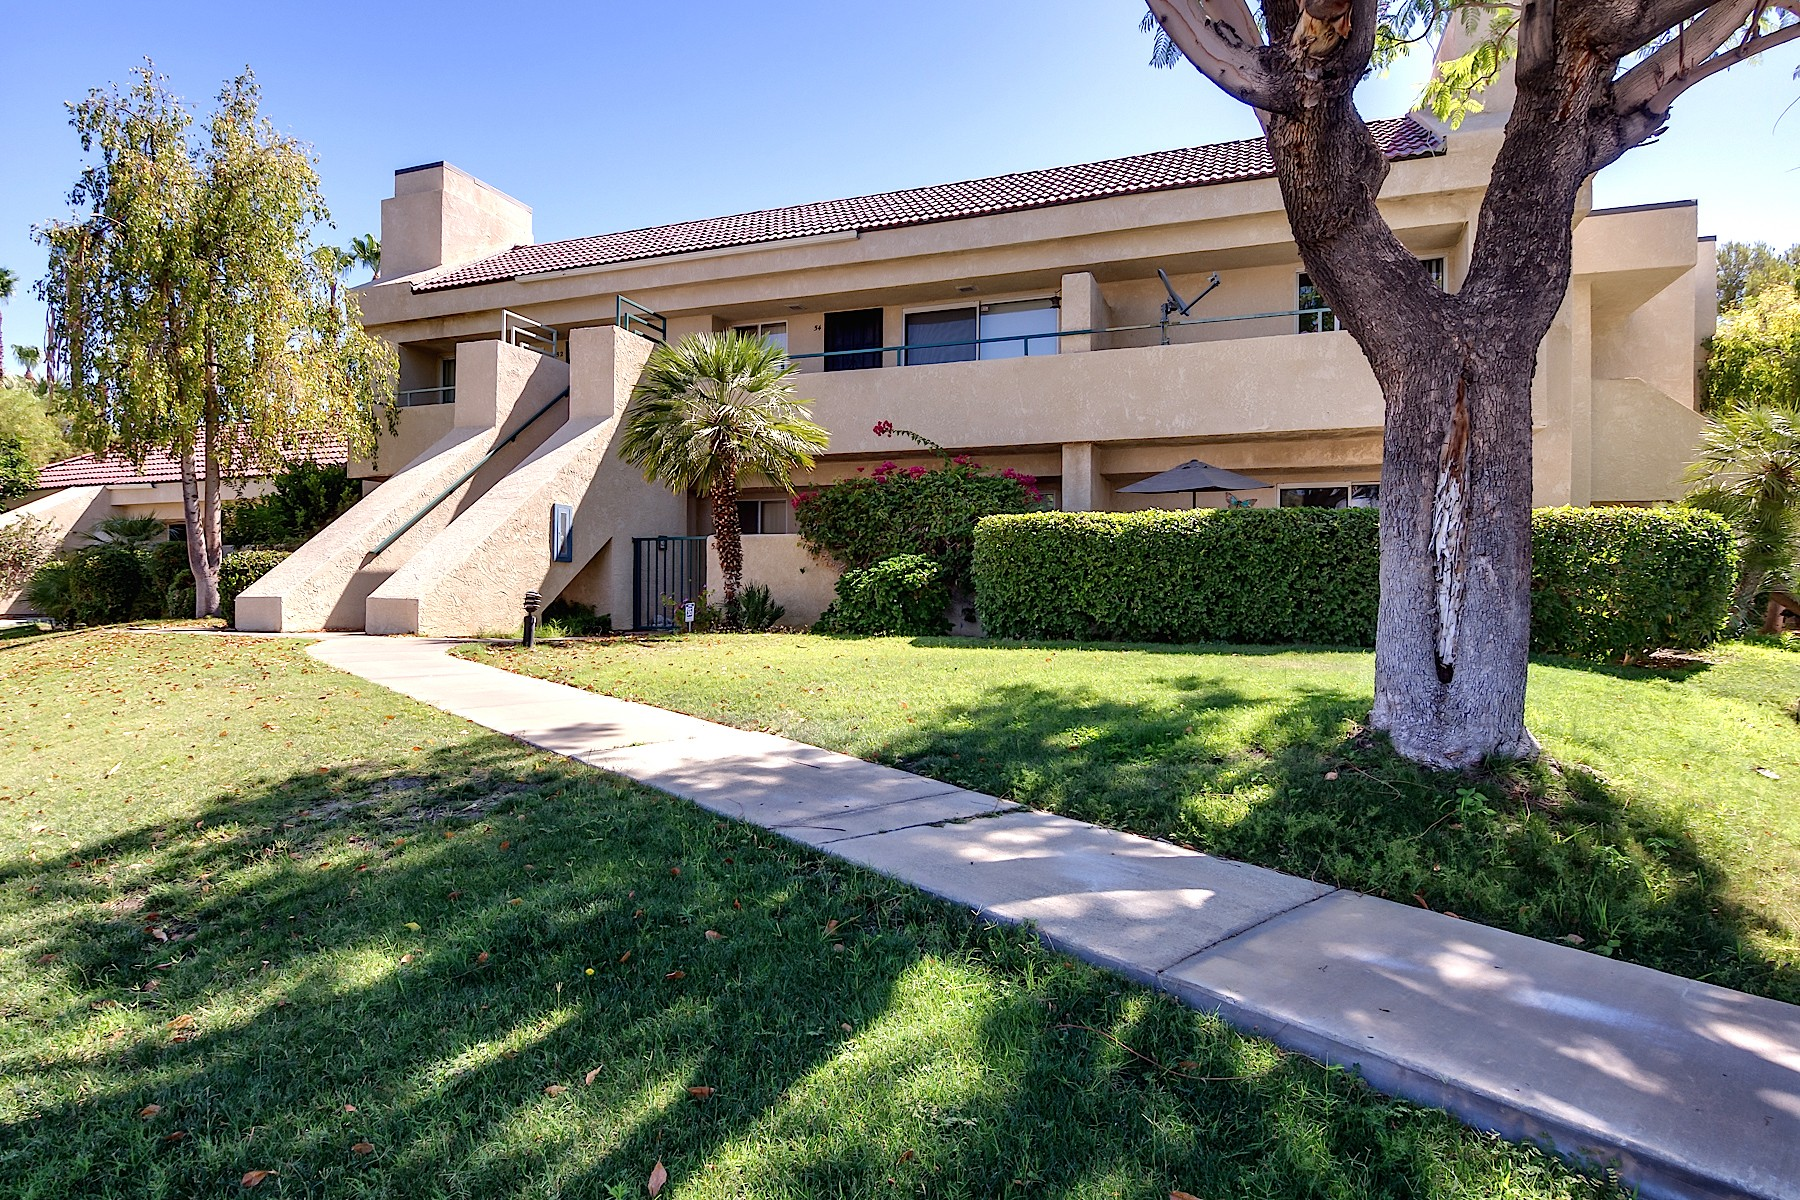 Condominium for Sale at 32505 Candlewood Dr #53 Cathedral City, California, 92234 United States